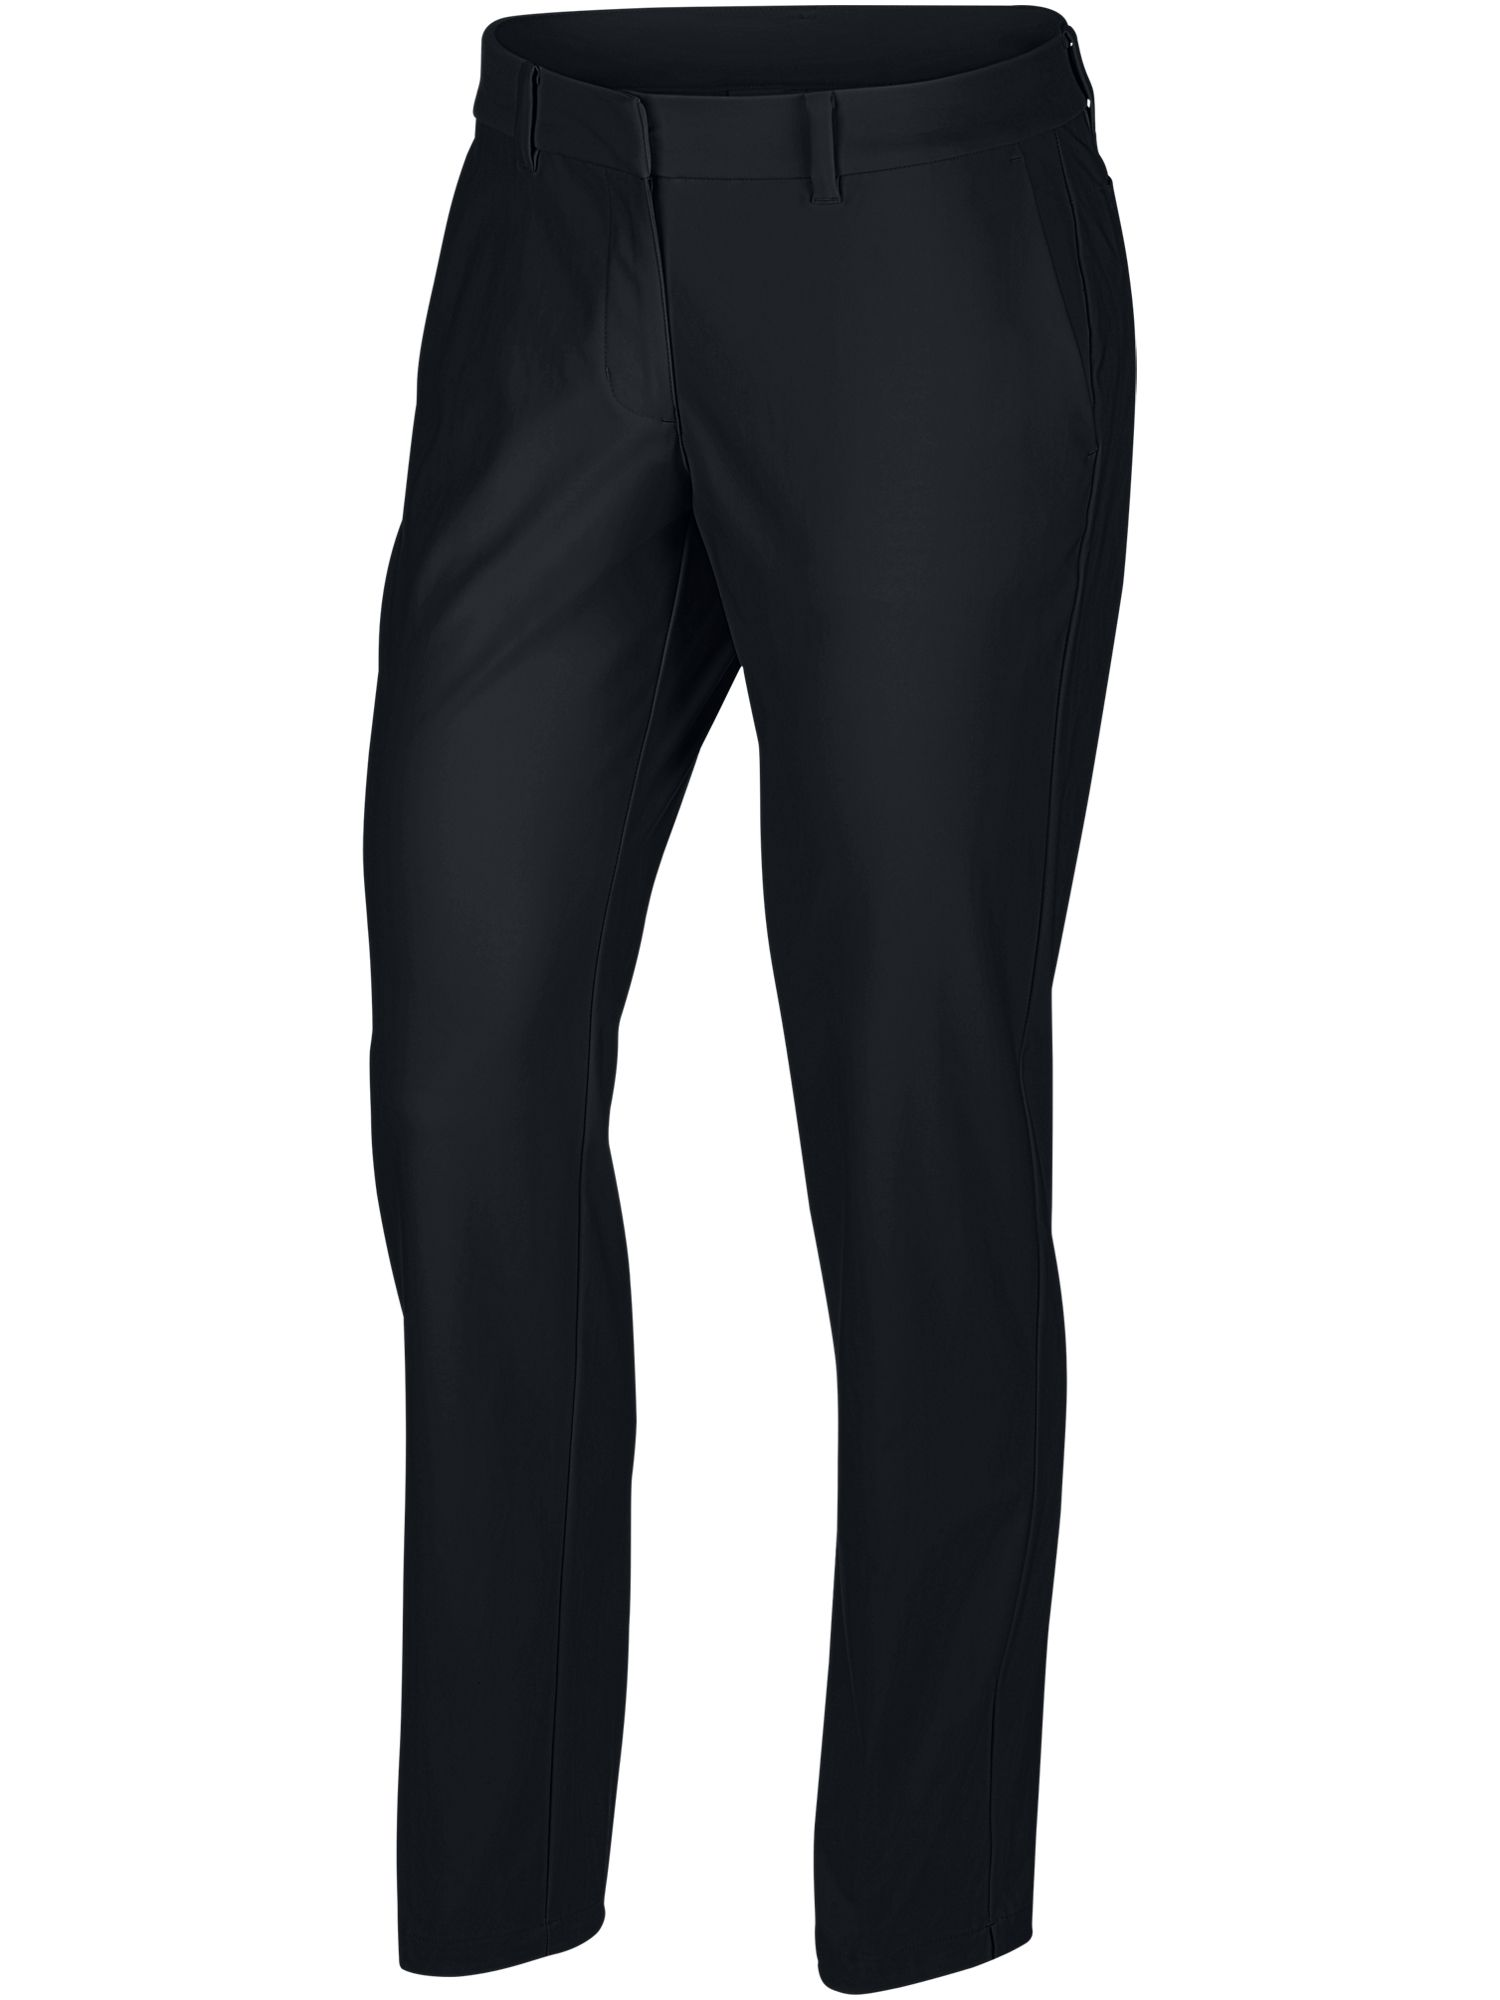 Nike Golf Flex Woven Trouser, Black